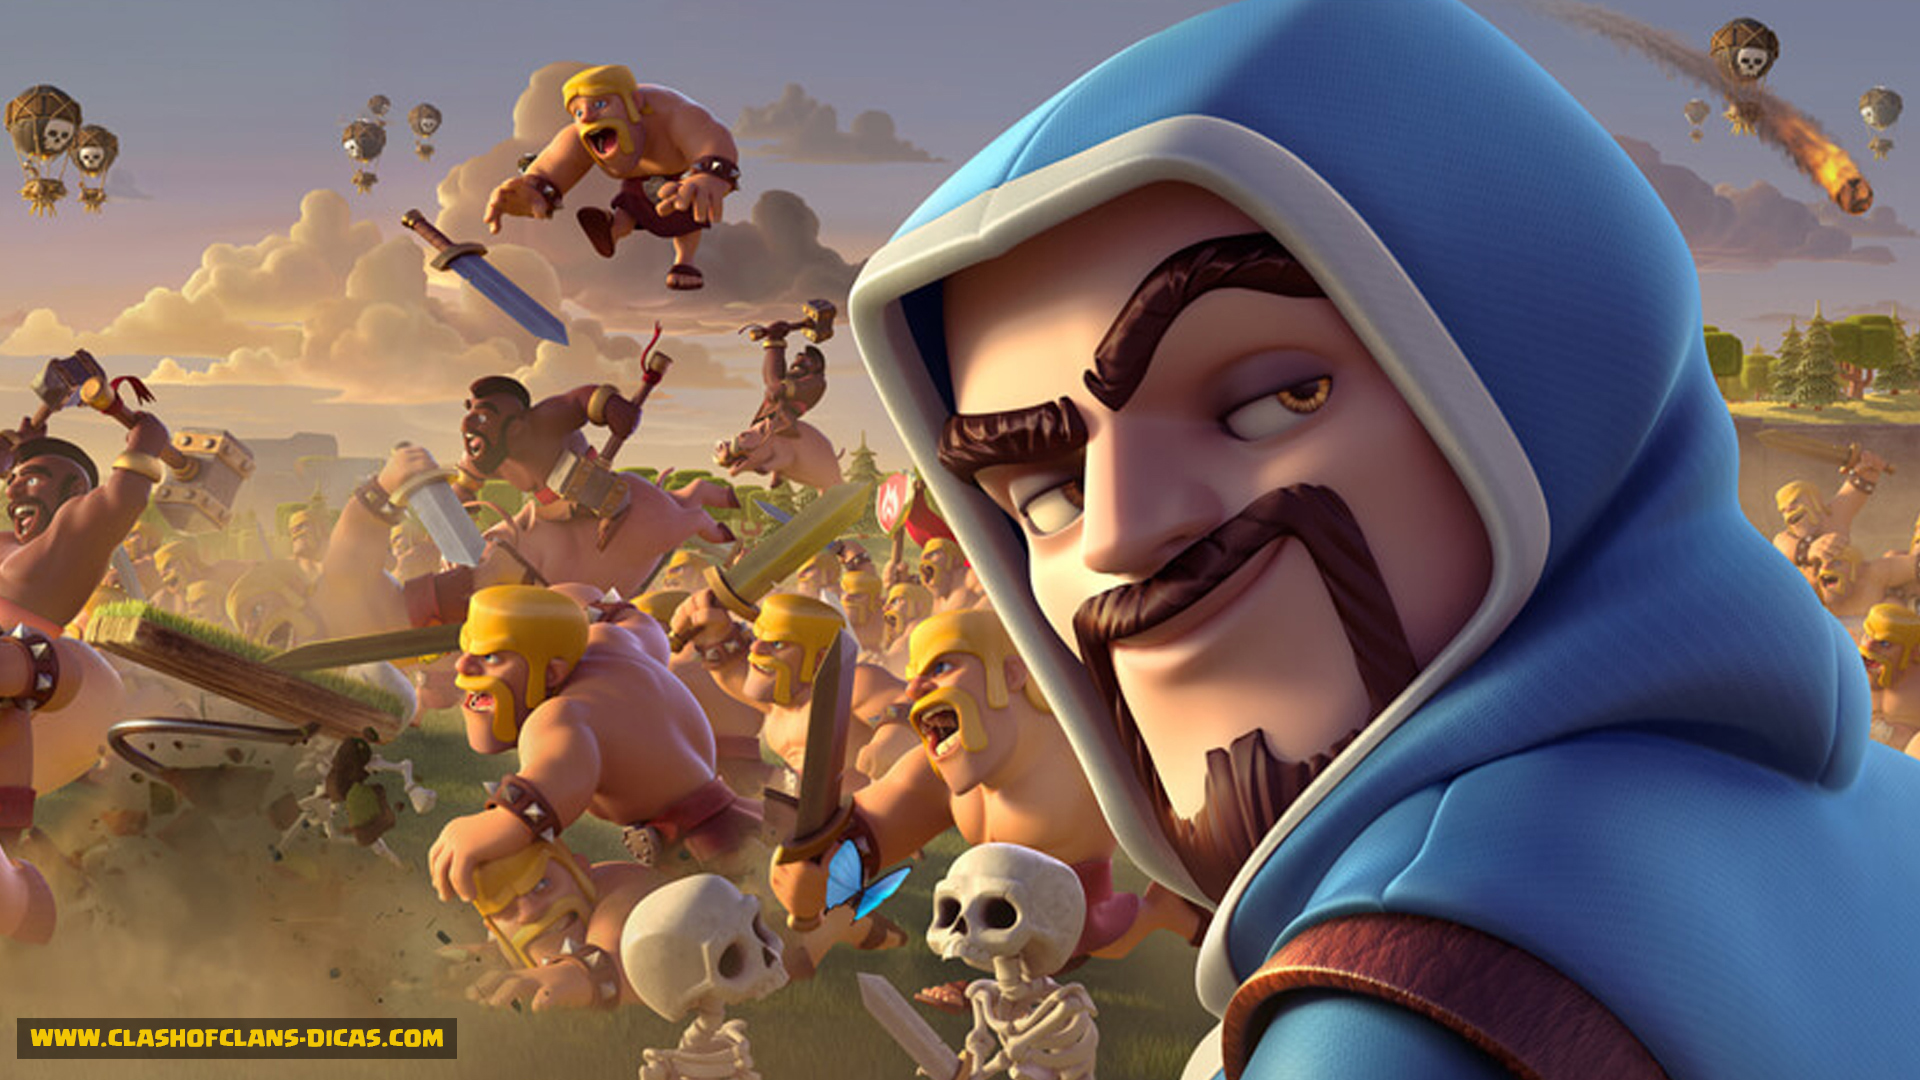 Clash Of Clans Pictures Wallpapers 38 Wallpapers 1920x1080